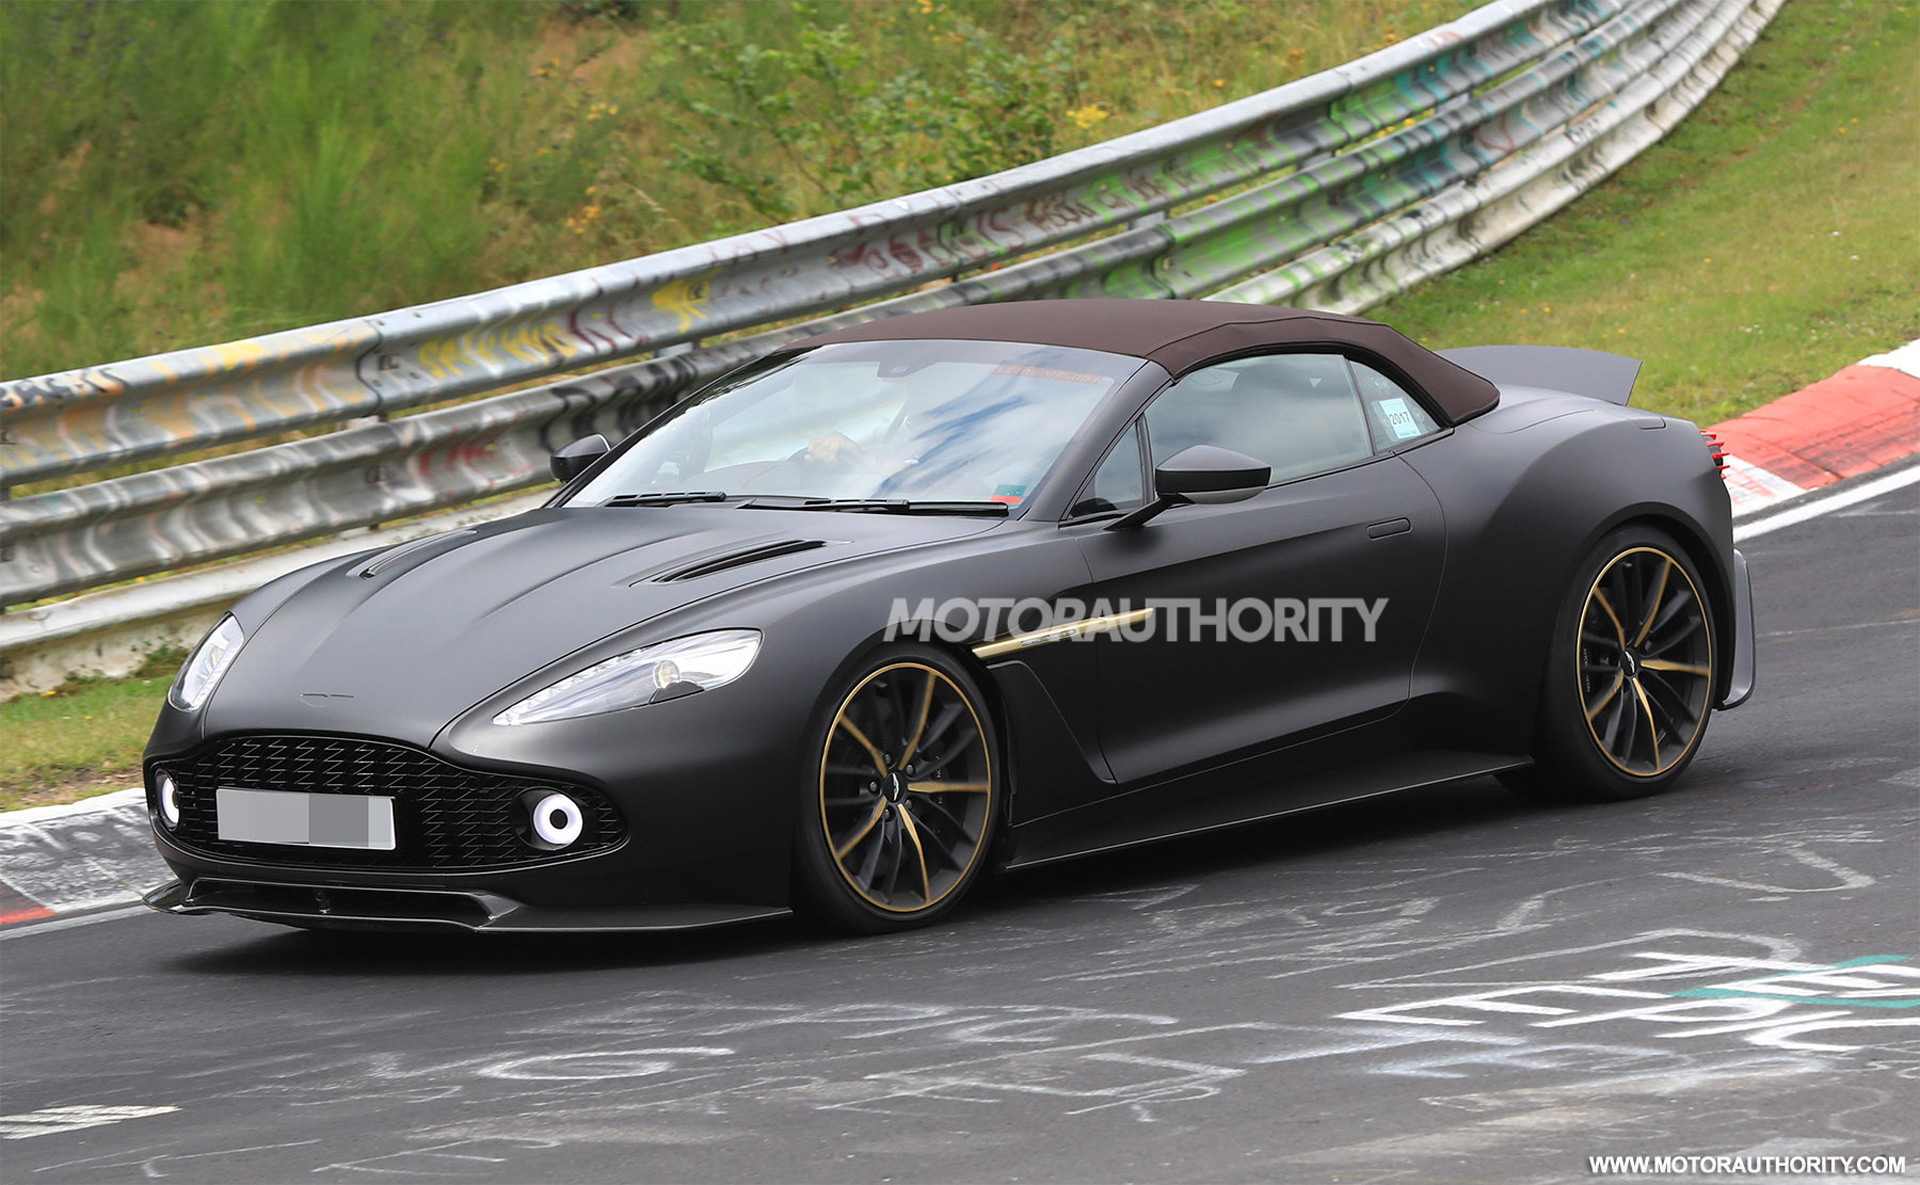 2018 Aston Martin Vanquish S Coupe Best Car News 2019 2020 By